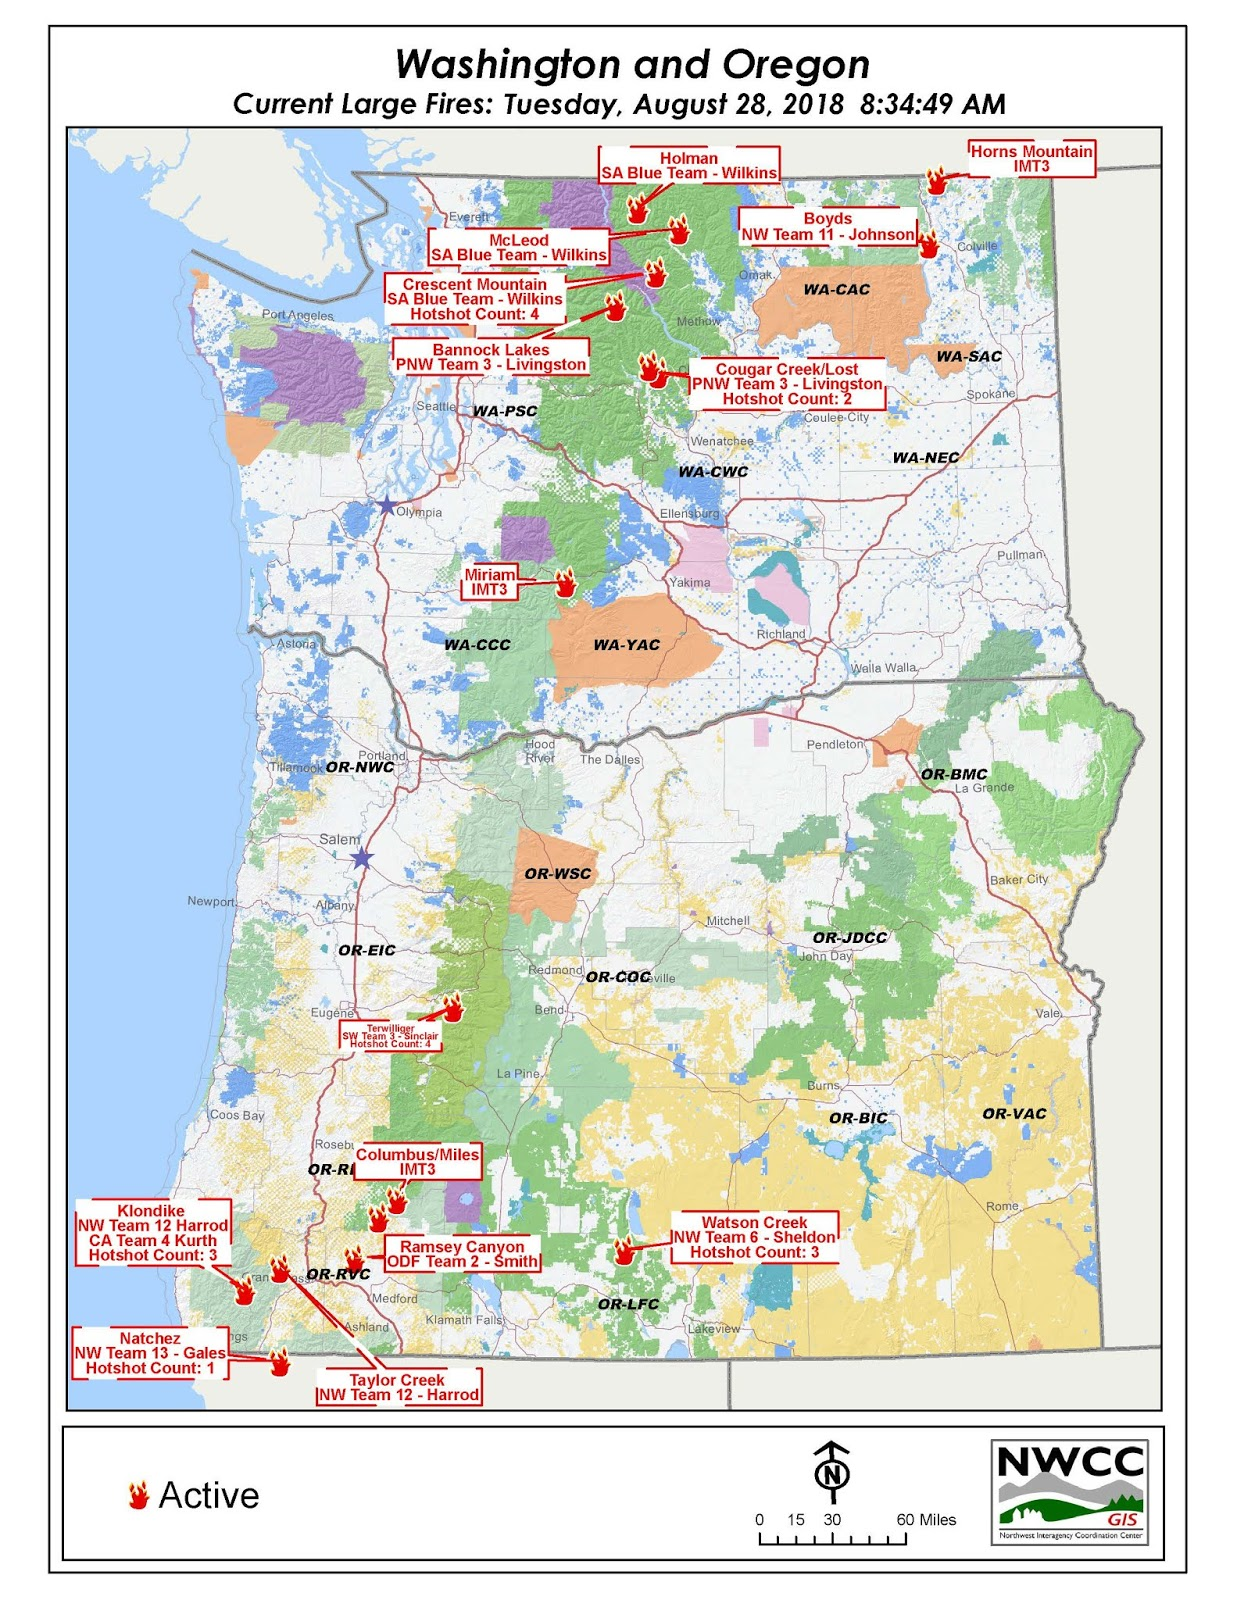 latest map of or wa large fires for an interactive map visit https gacc nifc gov nwcc there are over 8000 firefighters working on 17 large fires